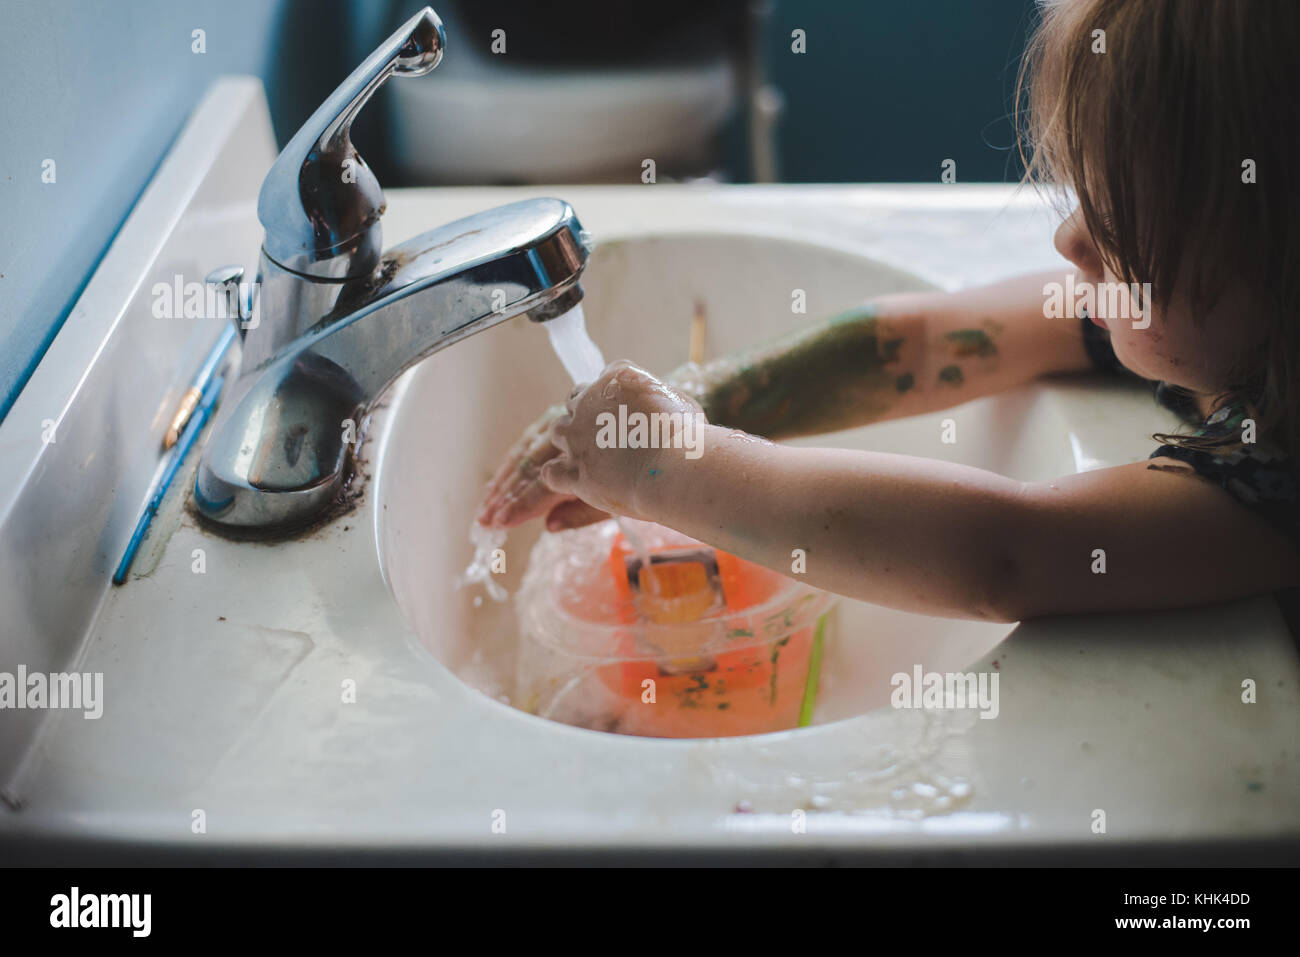 A toddler girl washing paint off her hands in a bathroom sink. - Stock Image